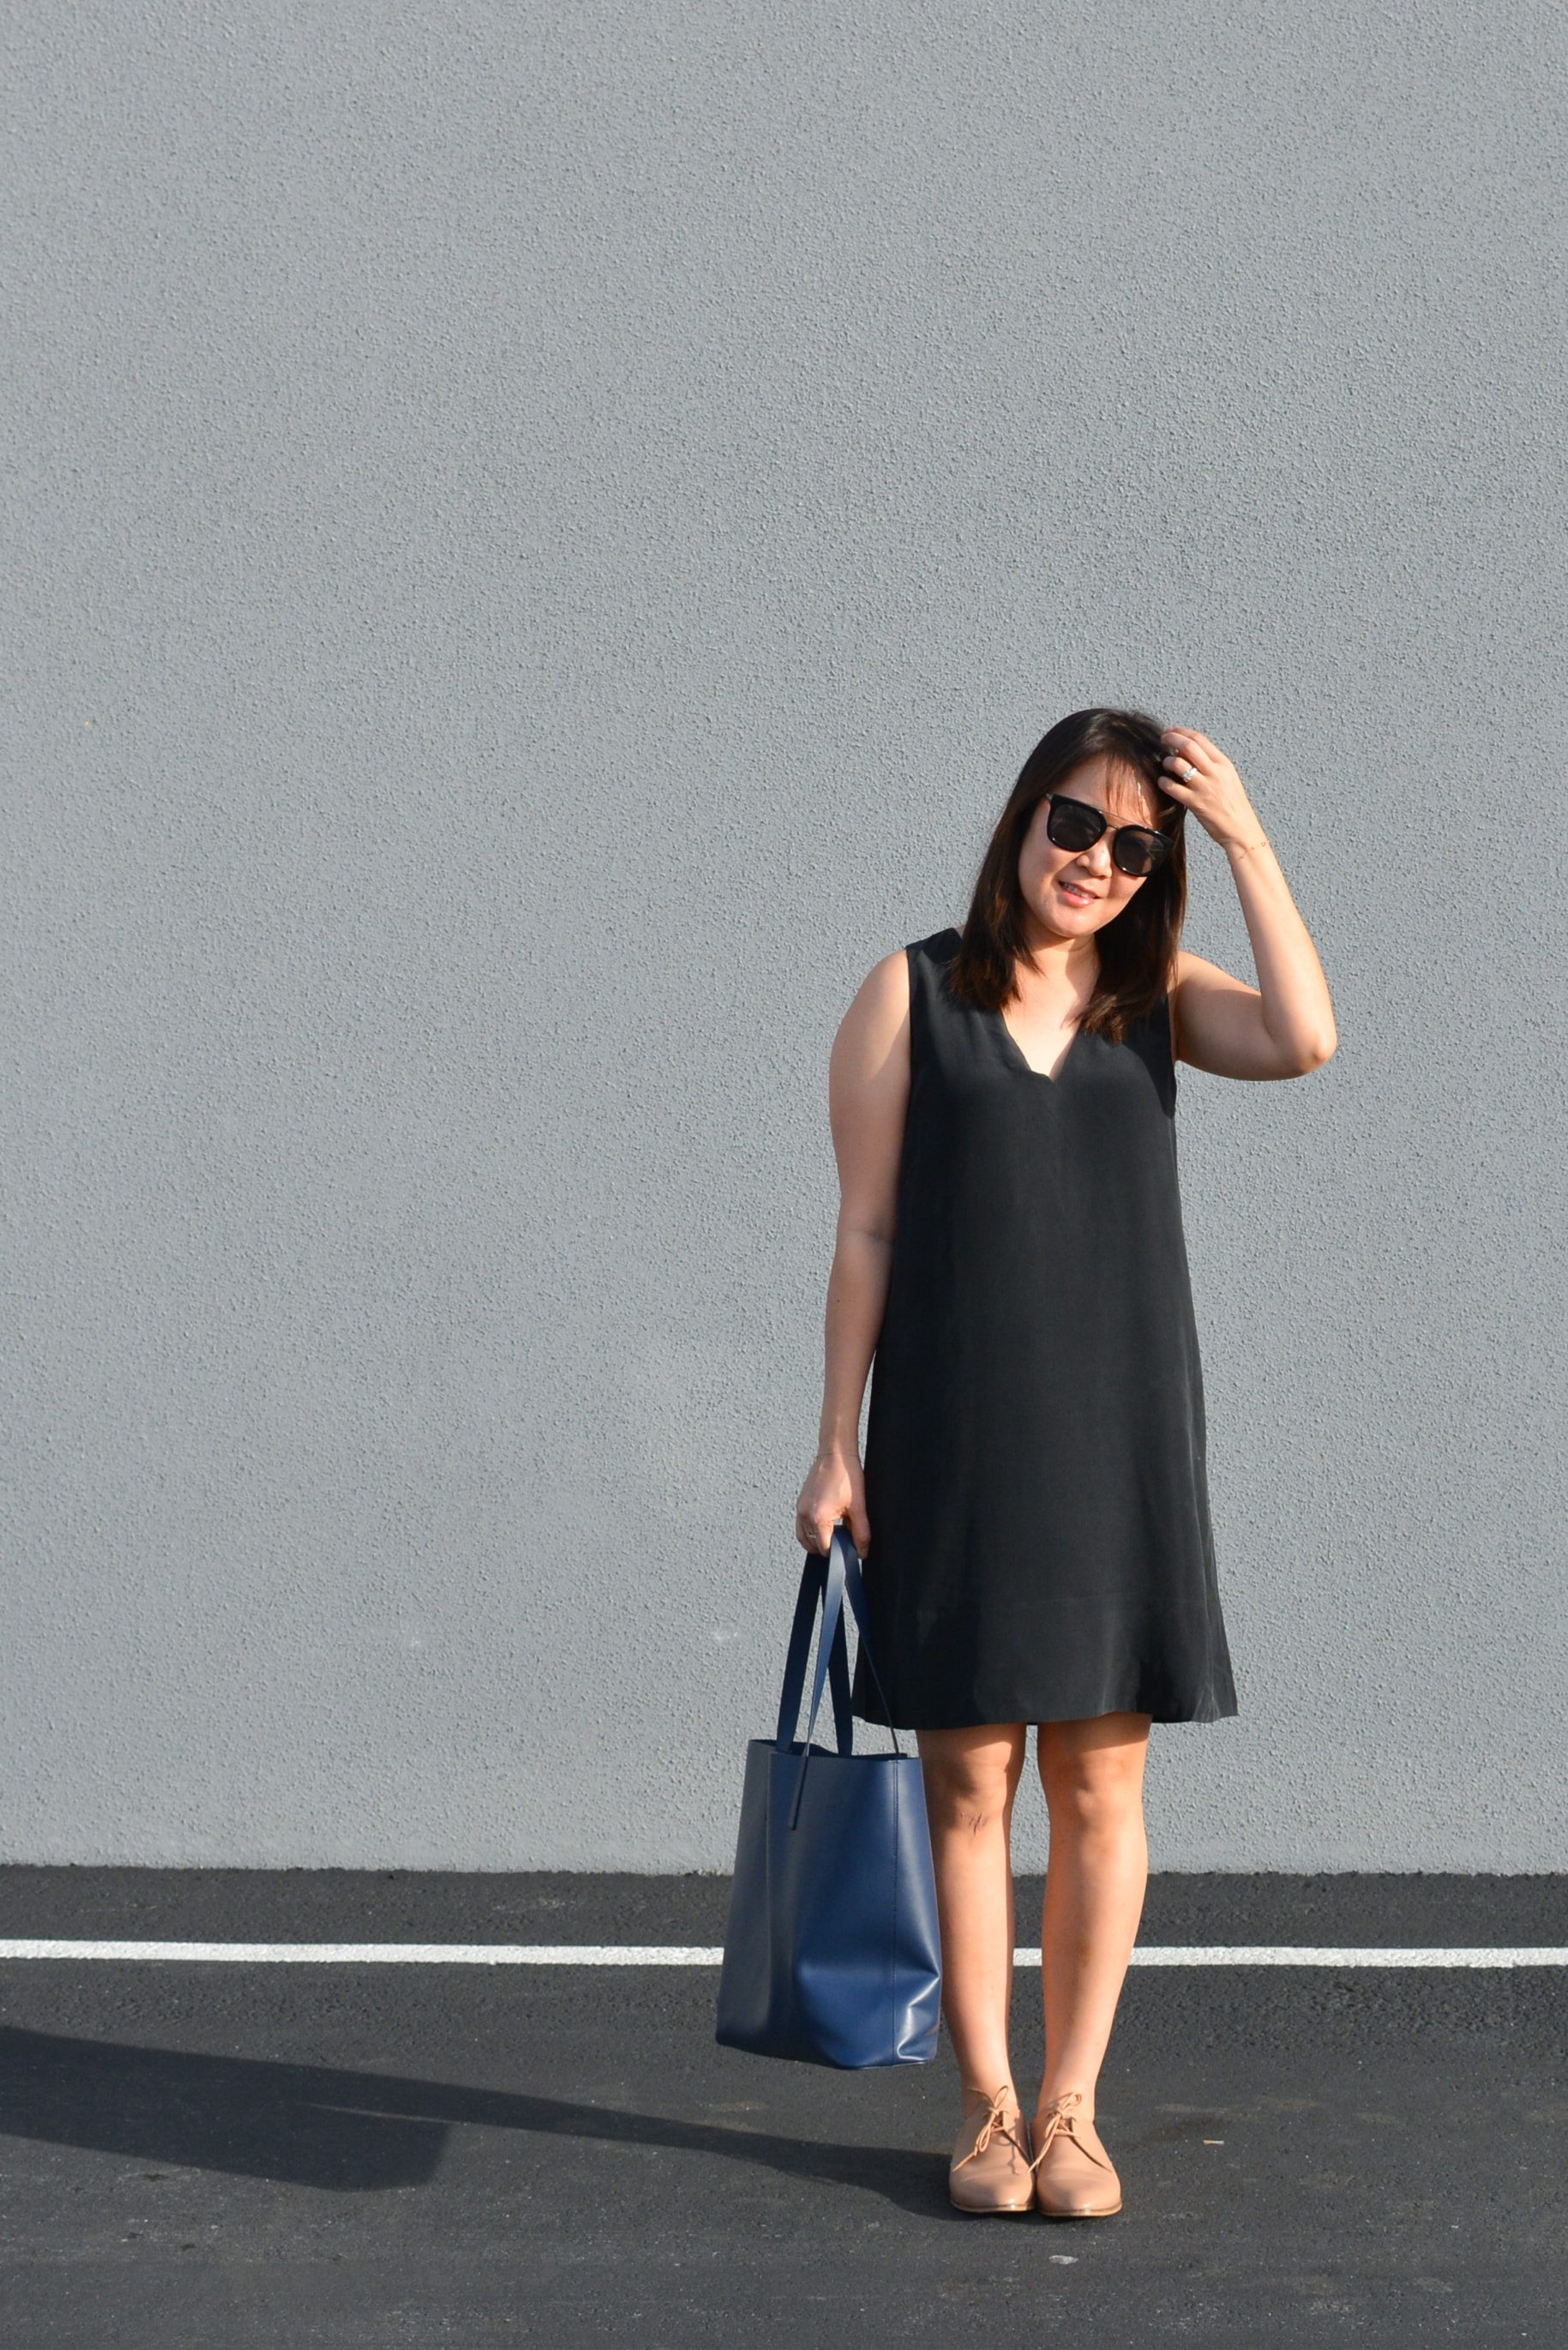 Everlane Review The Double-Lined V-Neck Silk Dress (2 of 3)-min.jpg